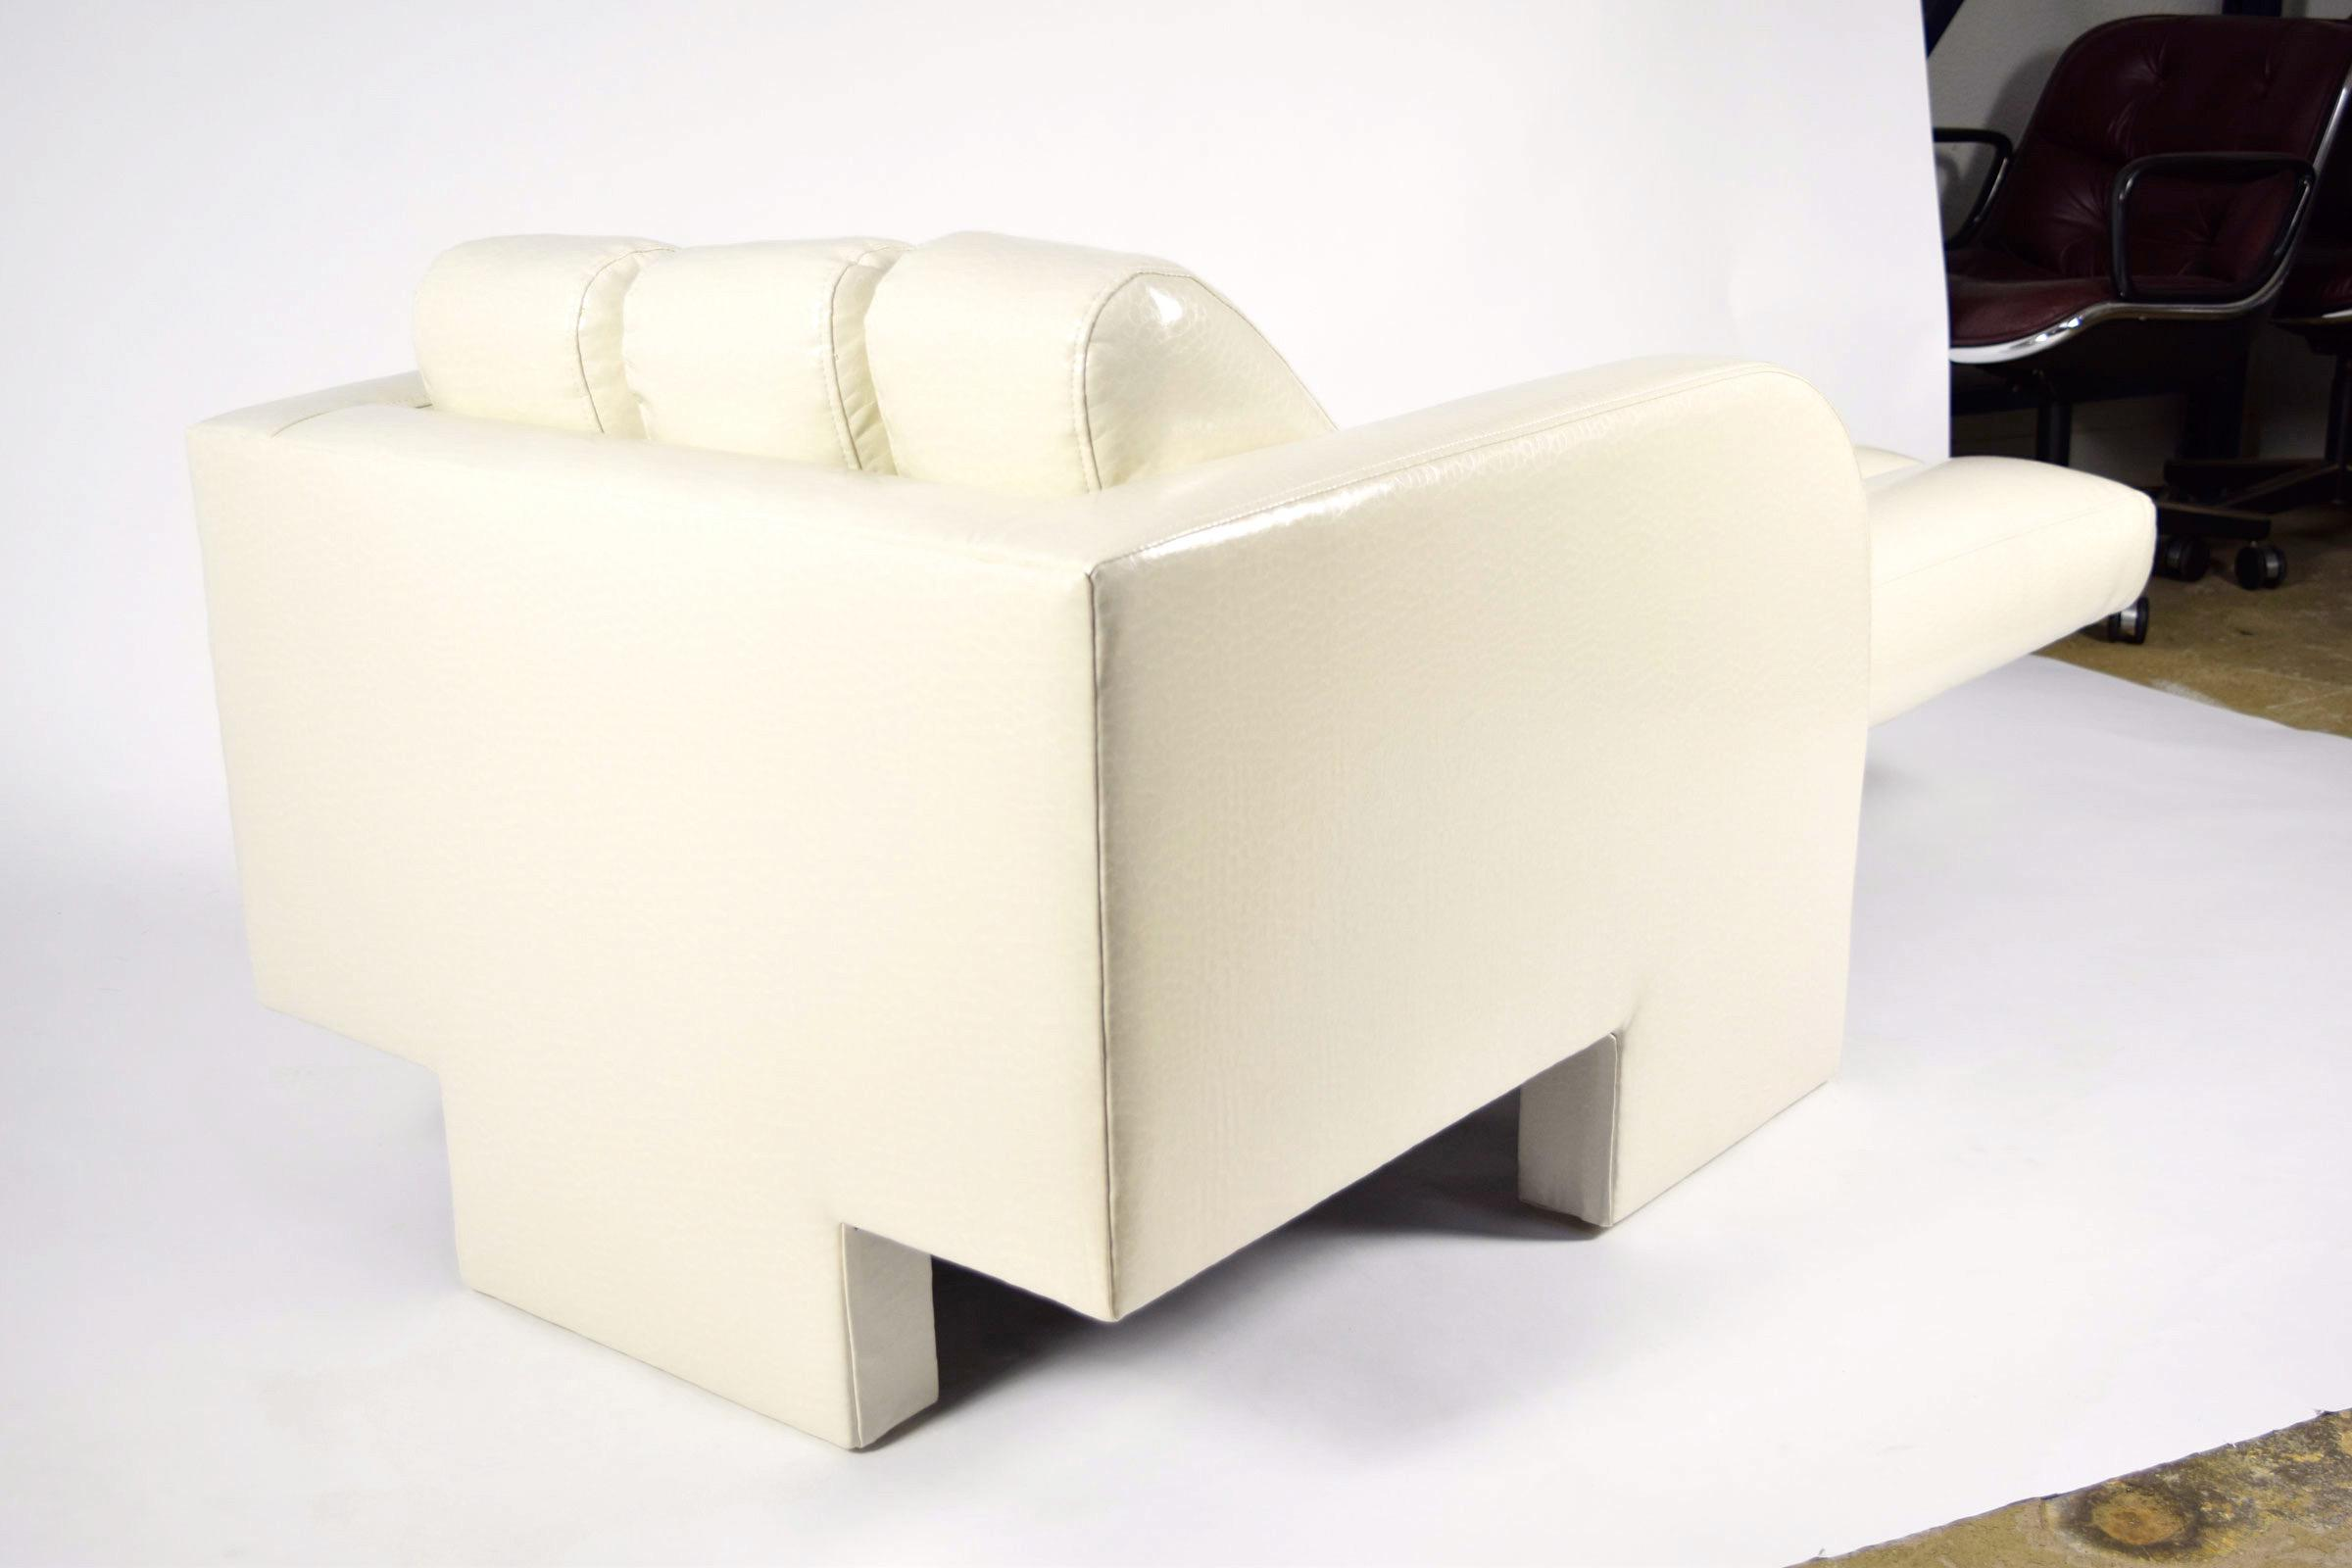 Excellent Vladimir Kagan Chaise In Holly Hunt Snakeskin